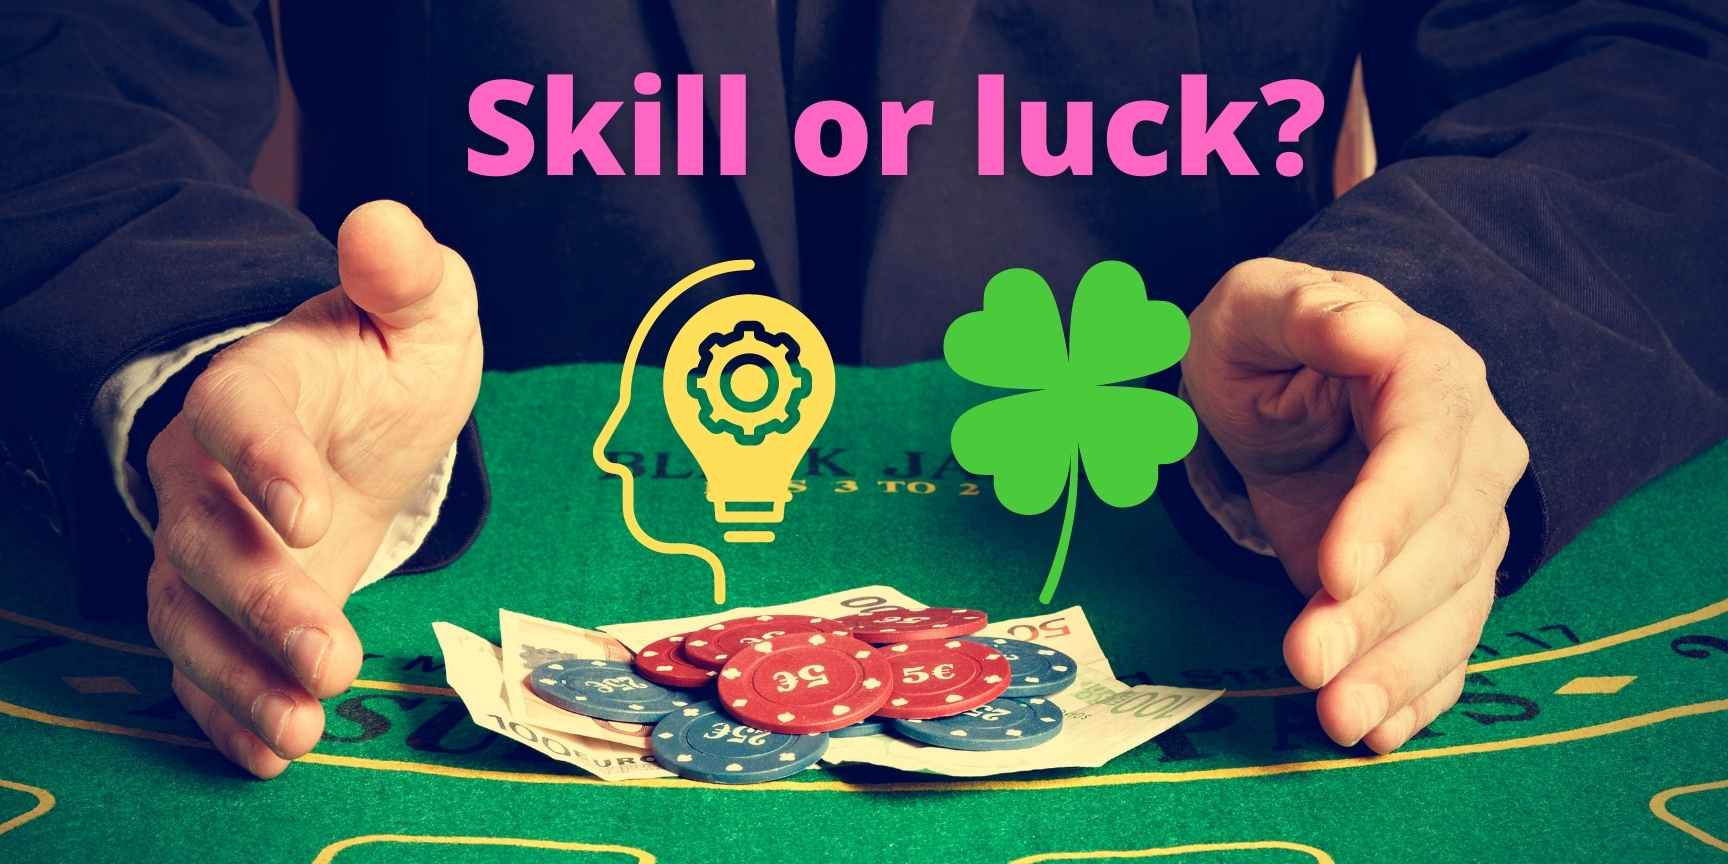 Is poker the game of skill or luck?